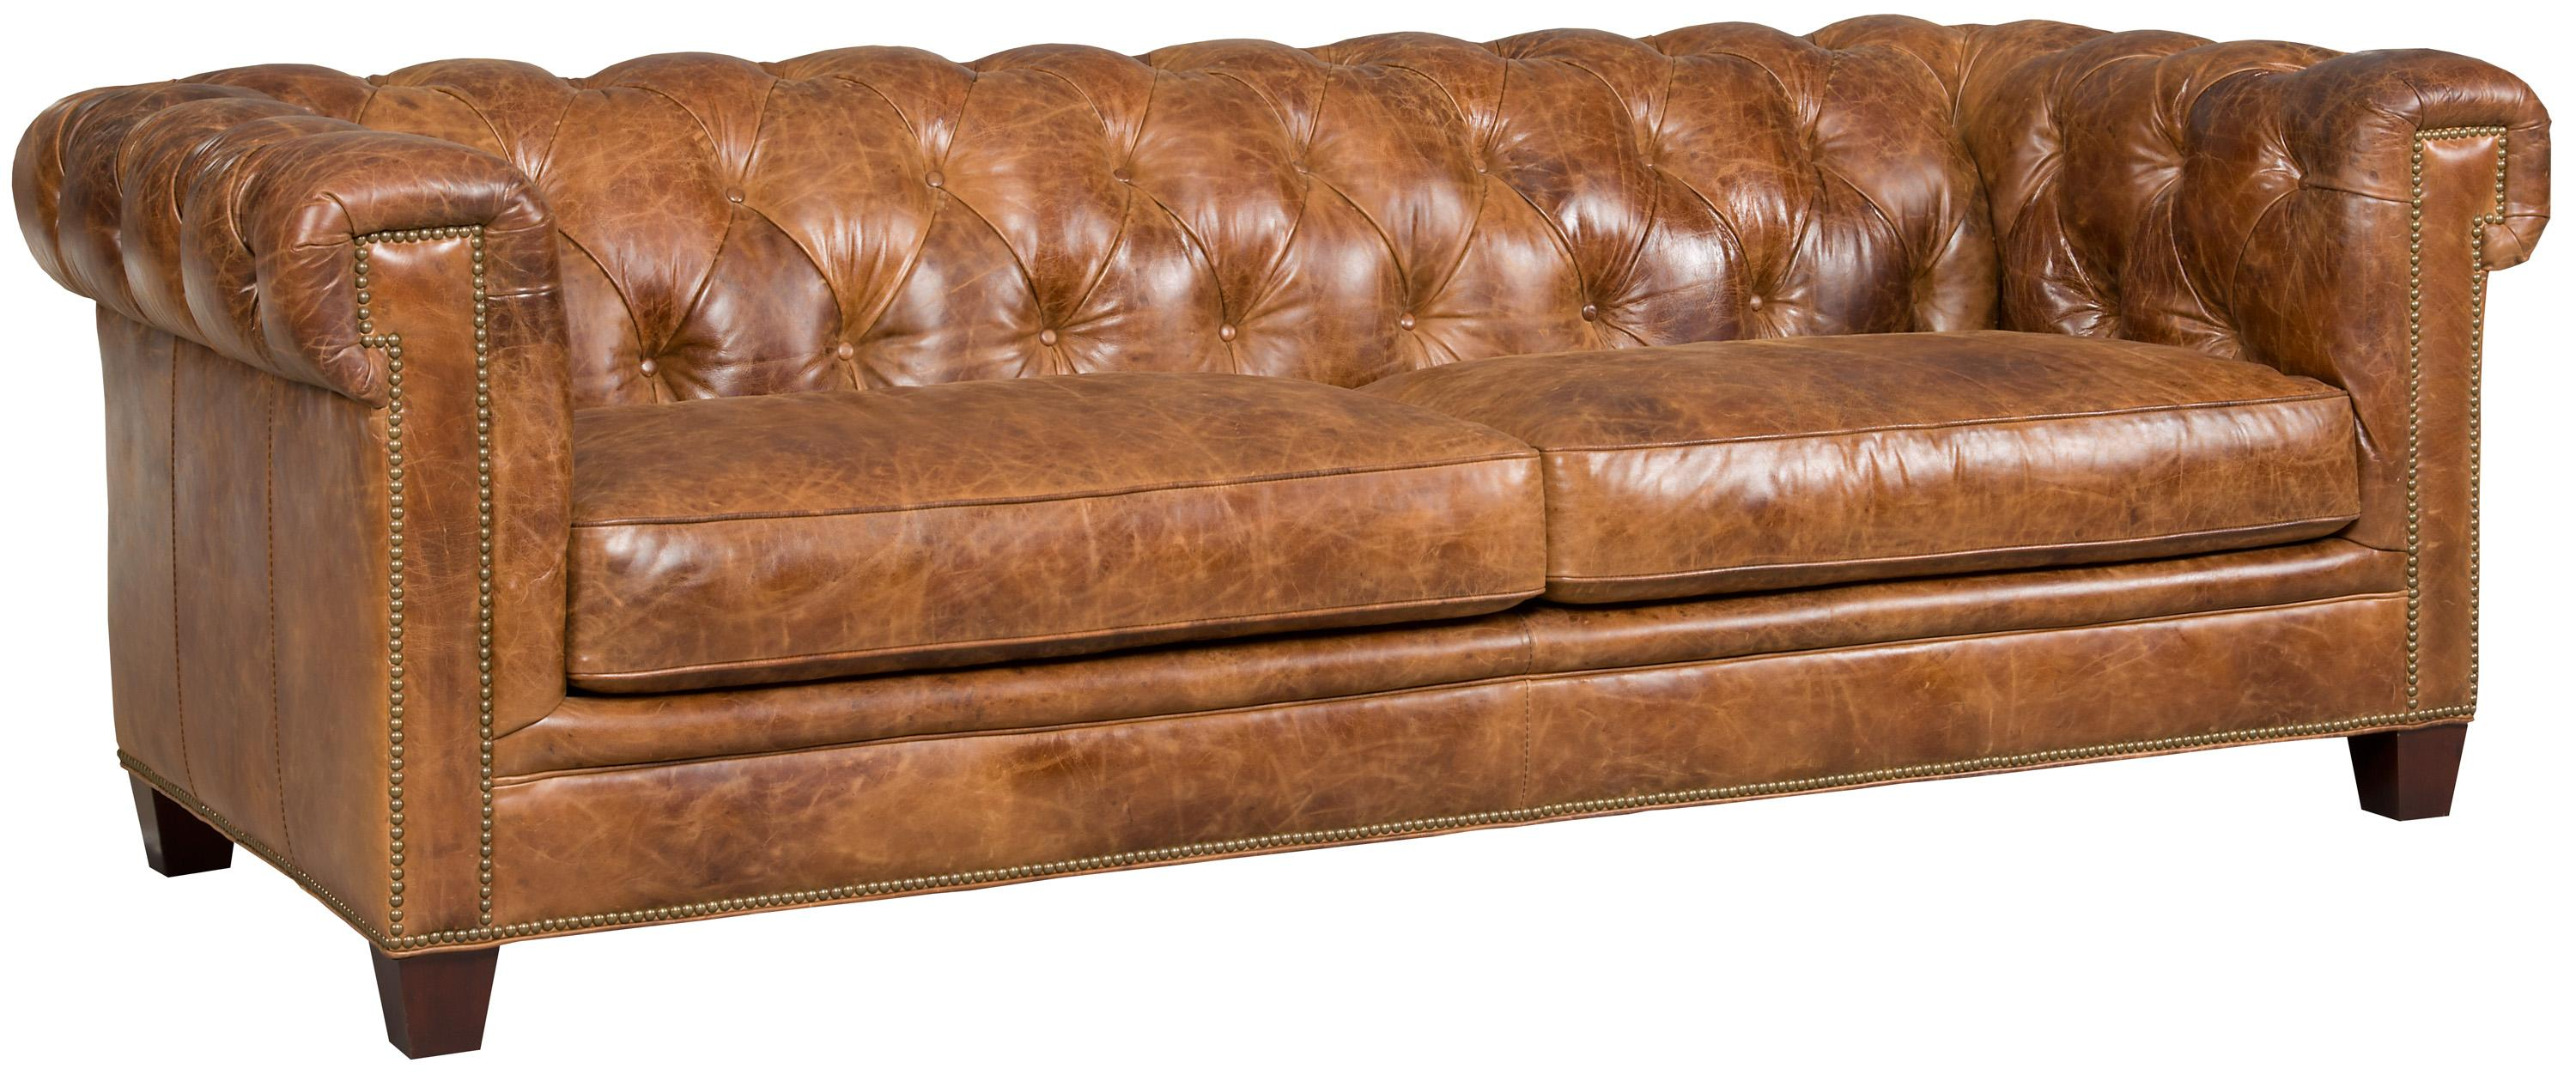 Transitional Chesterfield Sofa With Track Arms And Nailheads